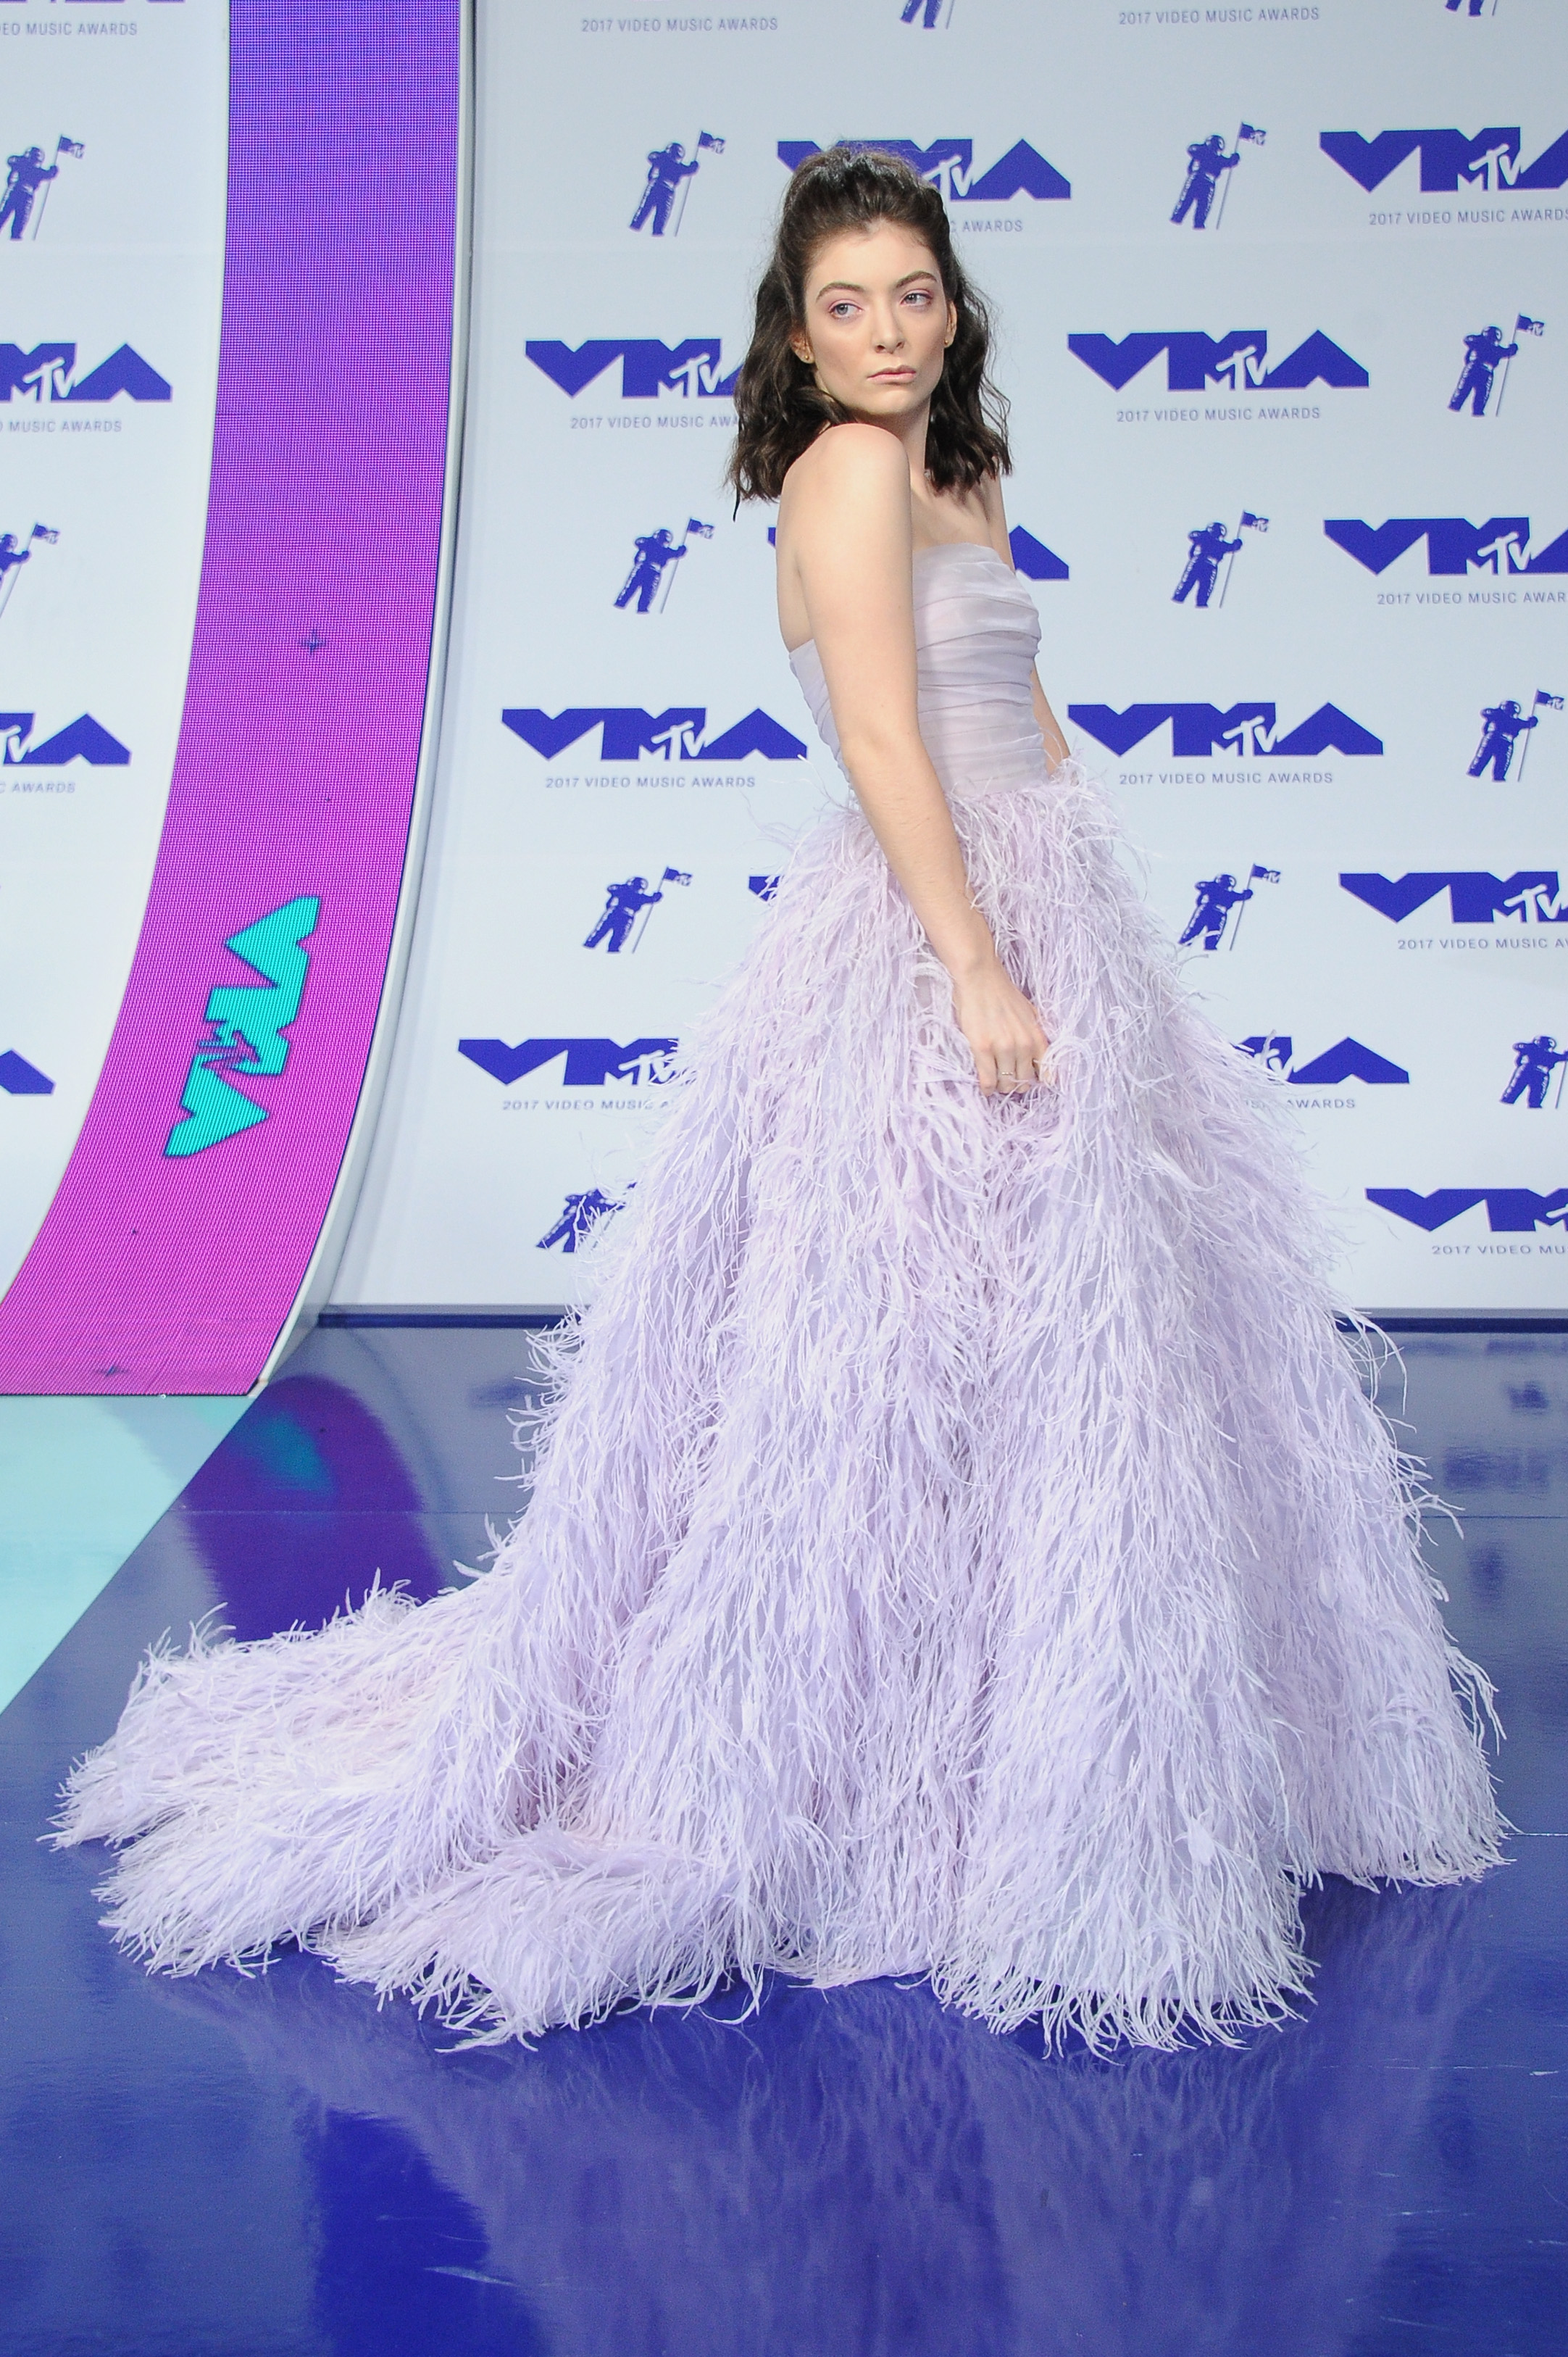 <p>LOSE </p> <p>Lorde in Monique Lhuillier at the MTV VMAs in LA on August 29.</p> <p>It's pretty but we are starting to miss the singer's edgier approach to dressing.</p>